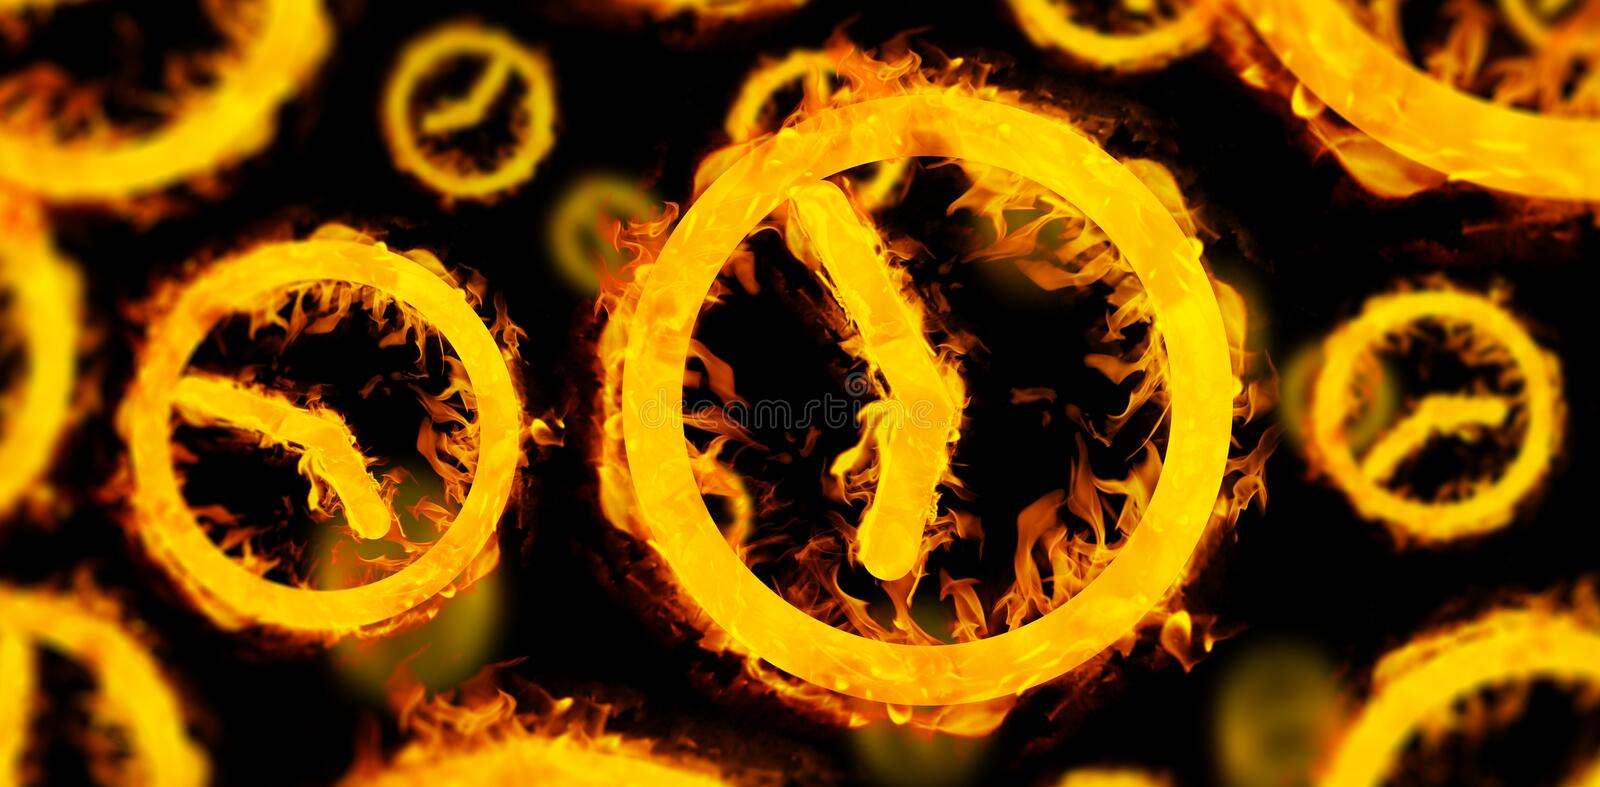 Composite image of several clocks in fire. Several clocks in fire against black royalty free illustration